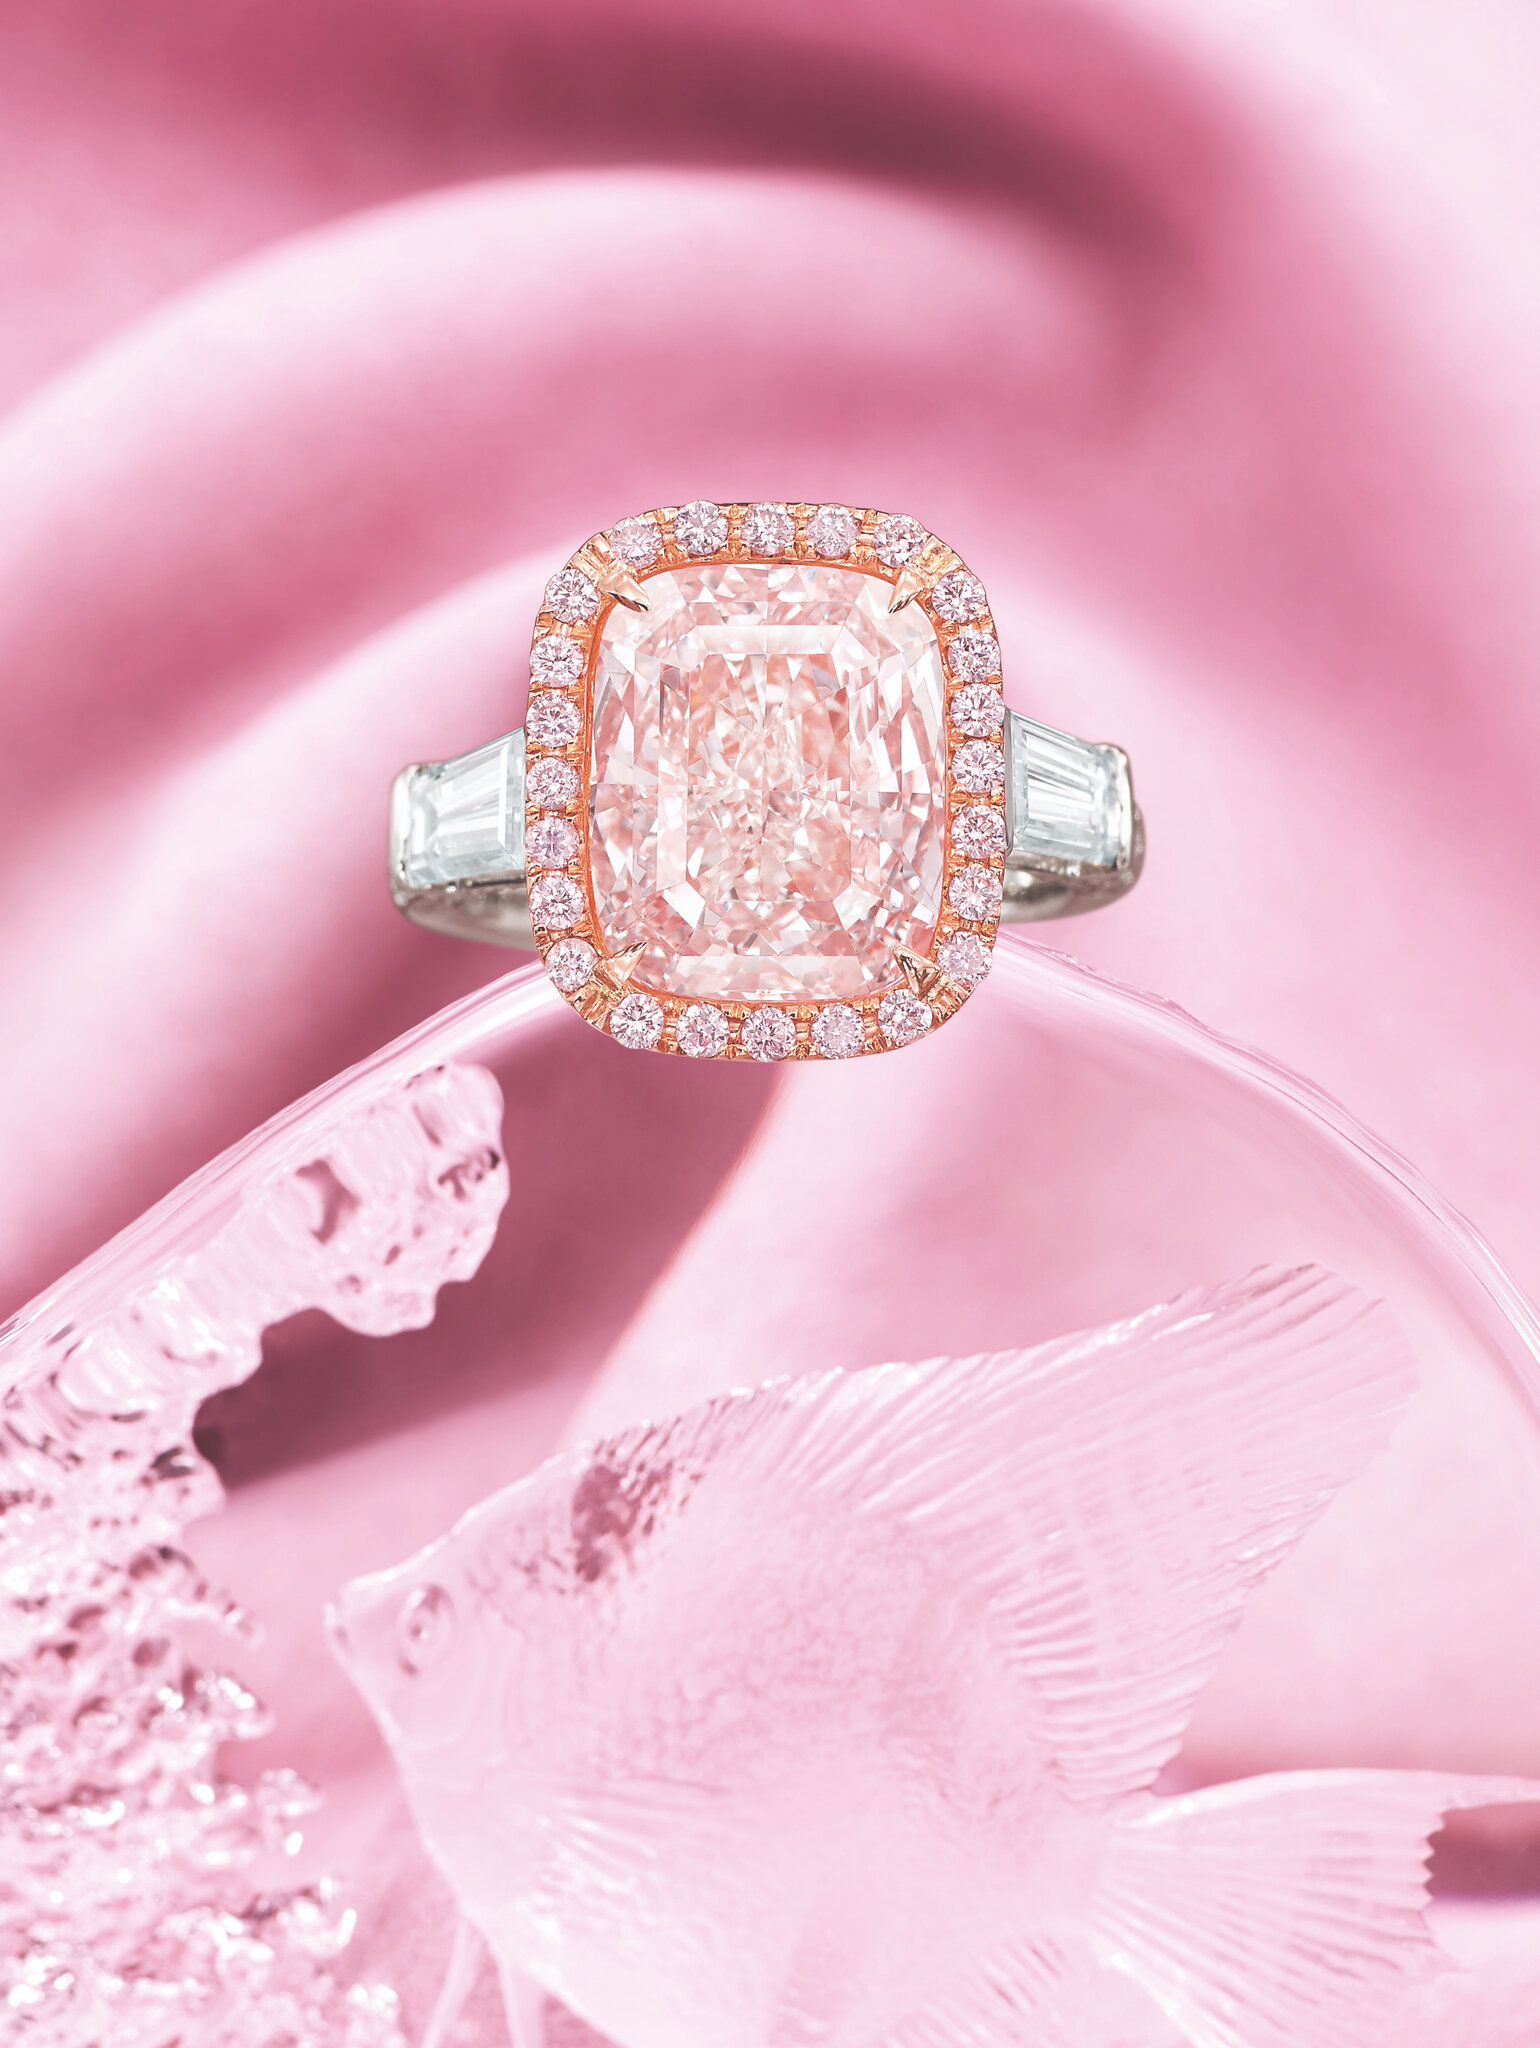 Tiancheng International announces highlights from the Jewellery and ...